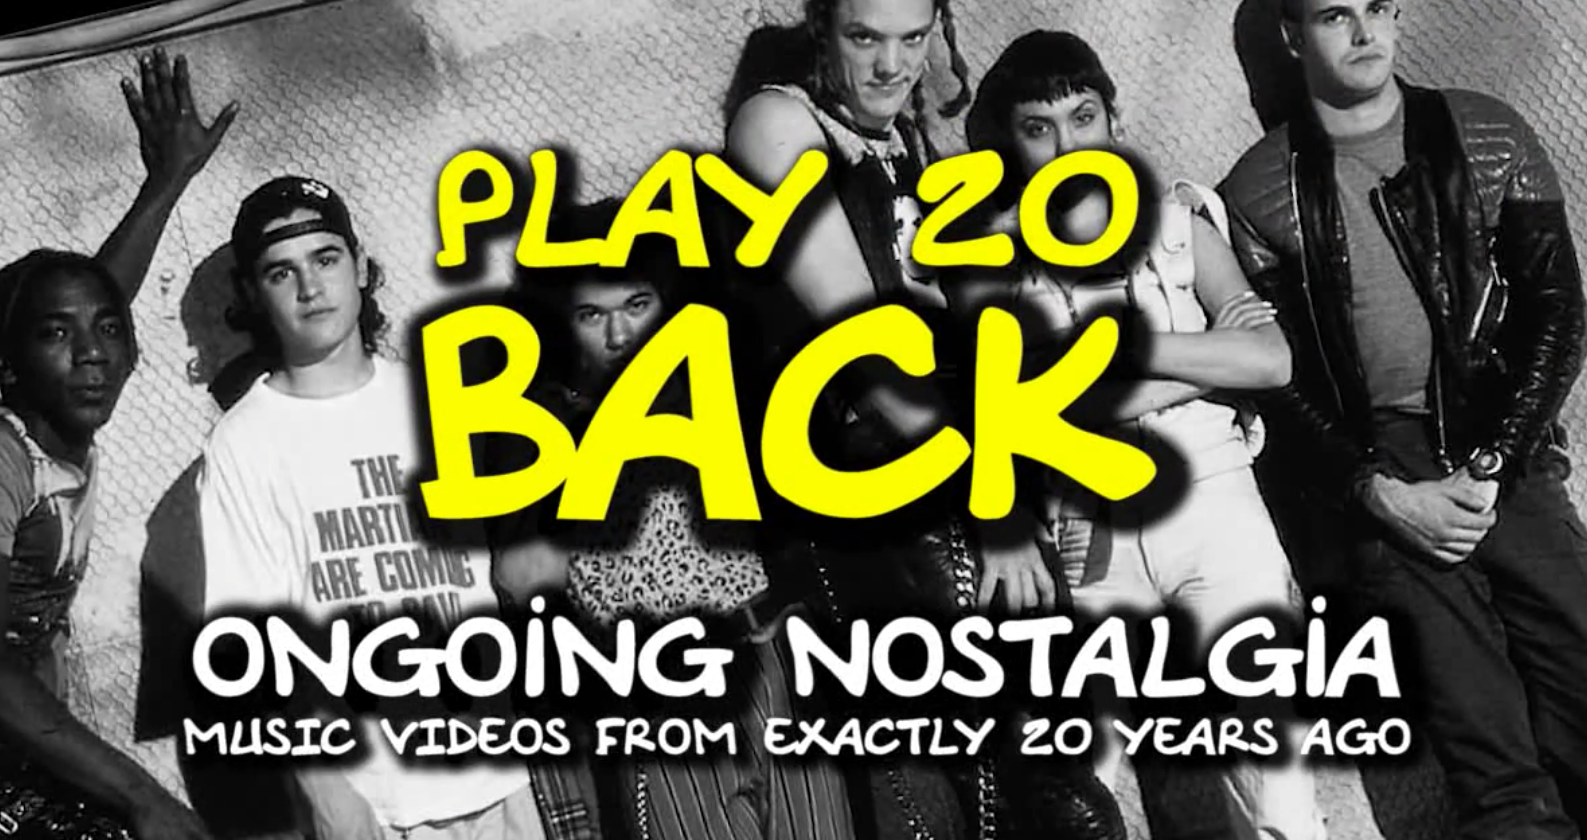 RT @TheNextWeb: Play20Back surfaces videos from 20 years ago (and all the feels that come with them) http://t.co/Ij9FMBvhmQ http://t.co/ZlP…